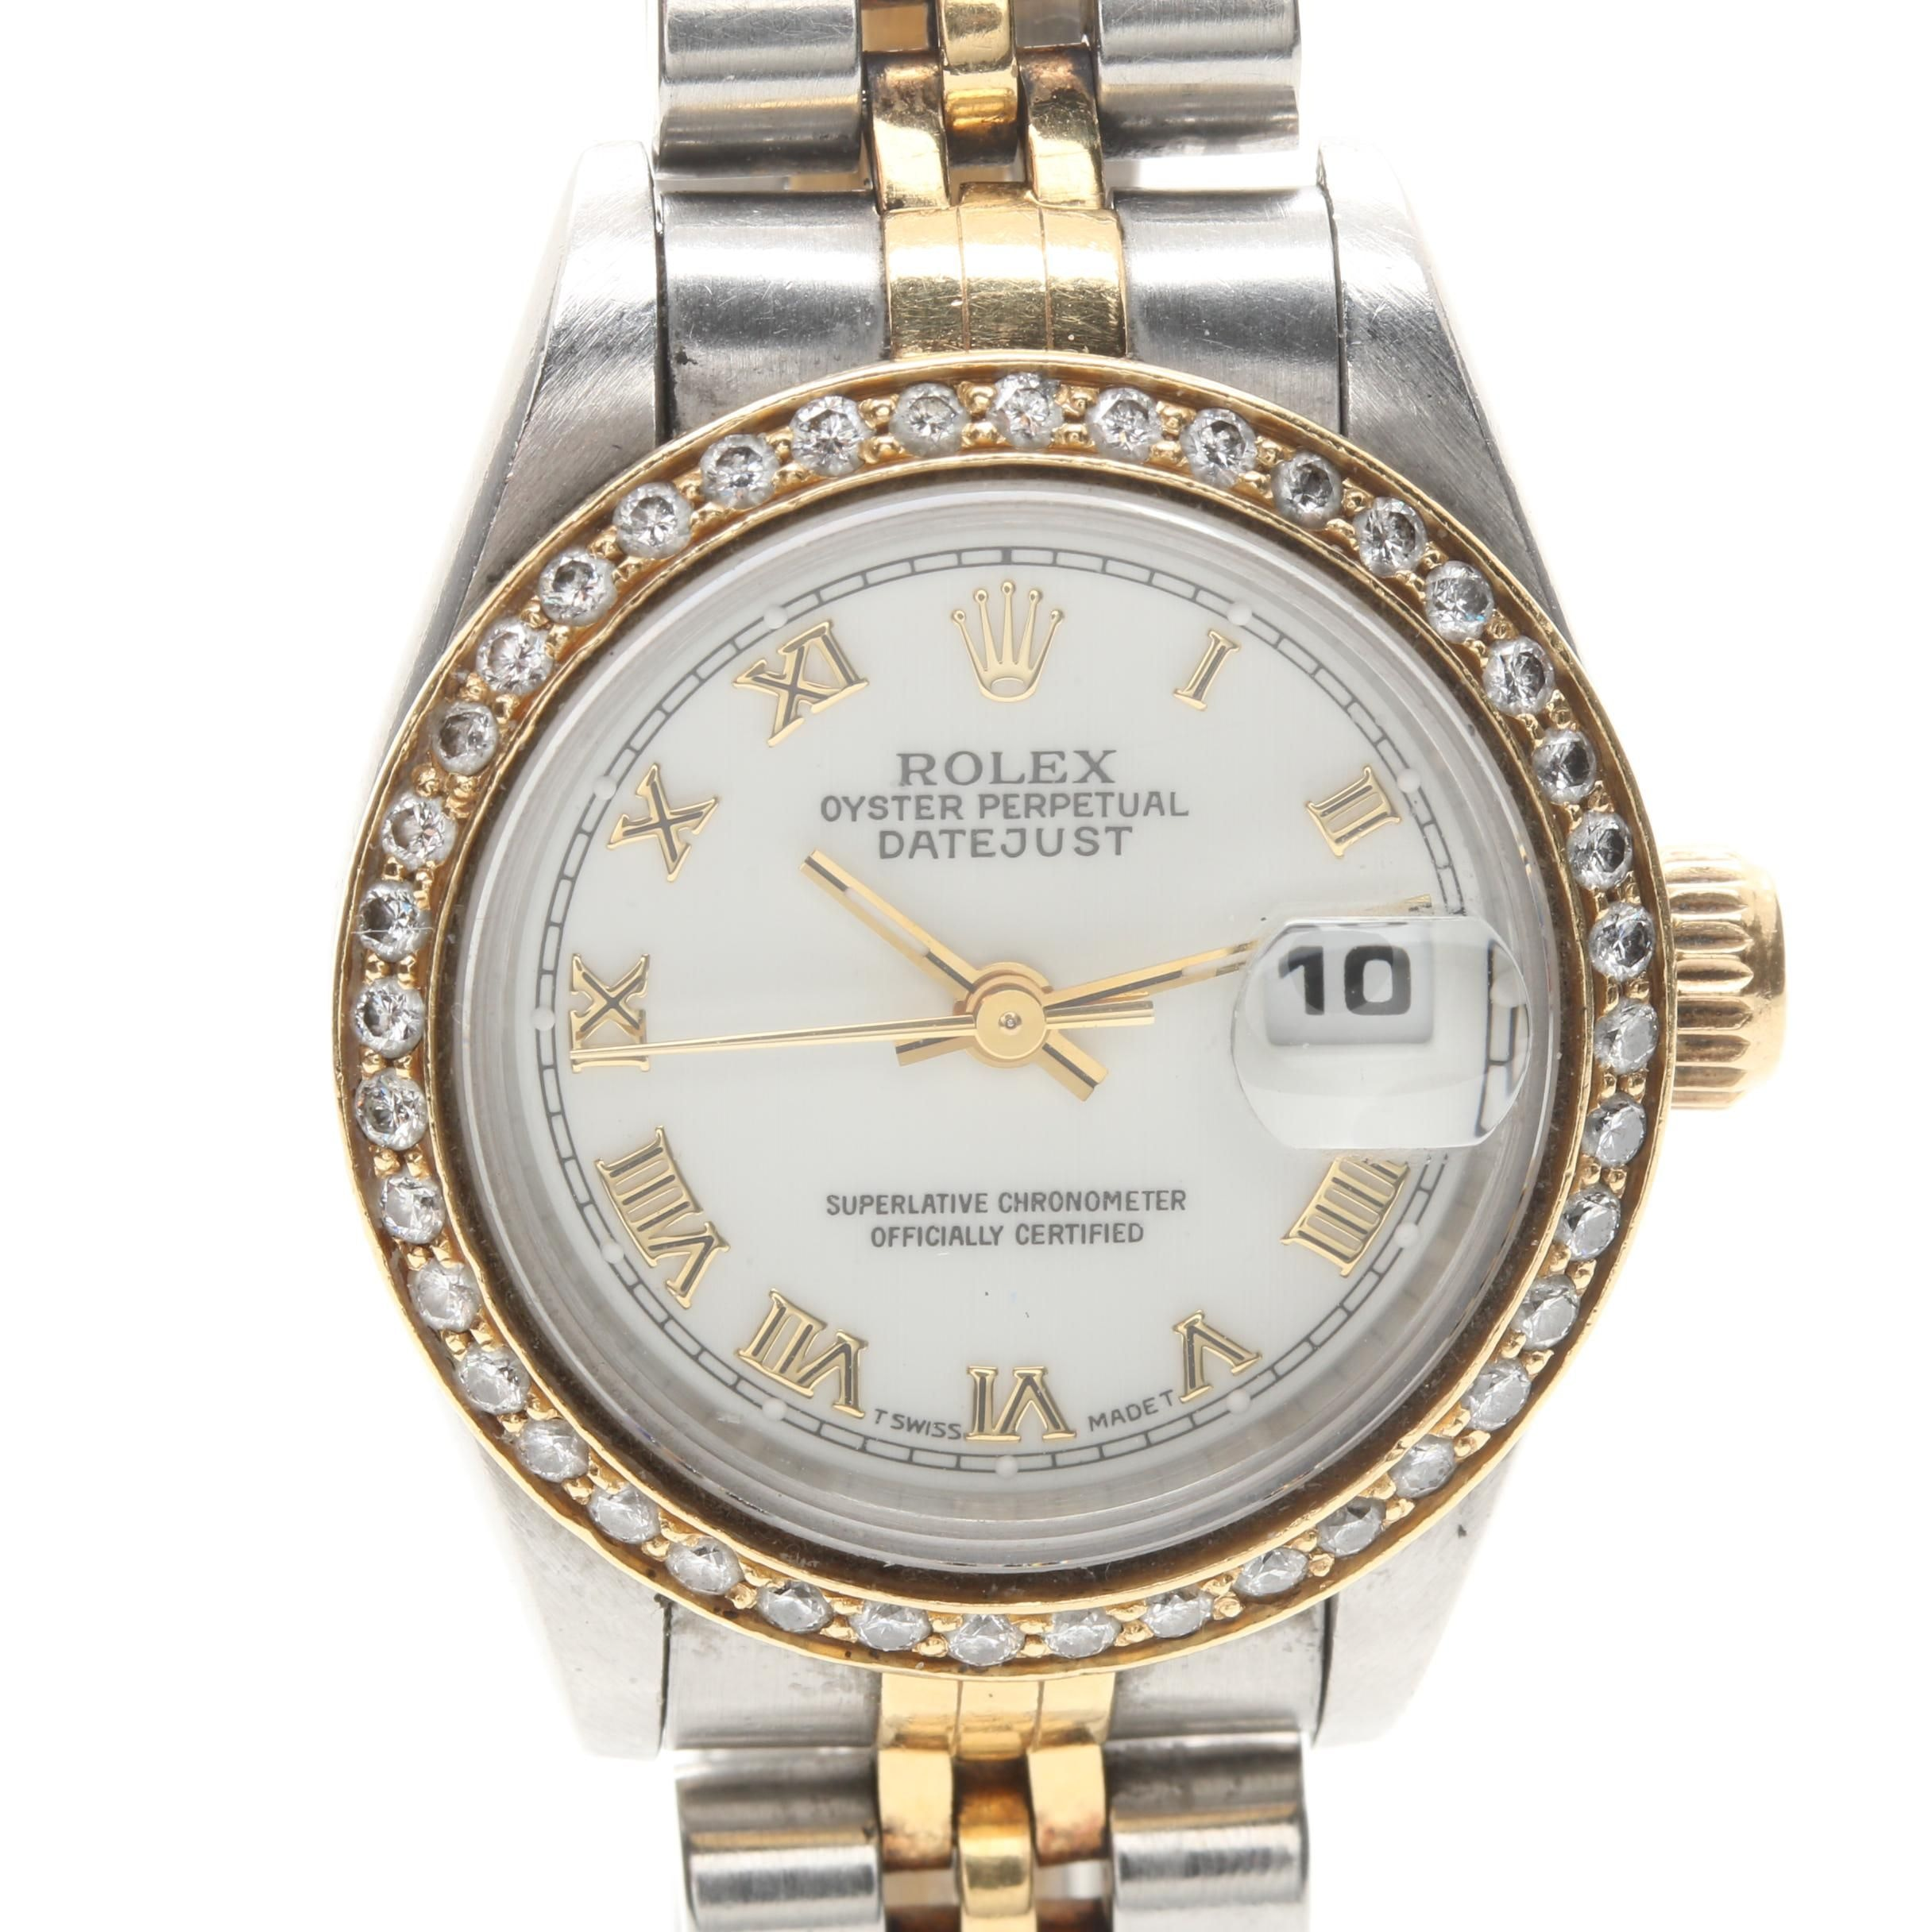 Rolex Oyster Perpetual Datejust Stainless Steel, 18K and Diamond Wristwatch